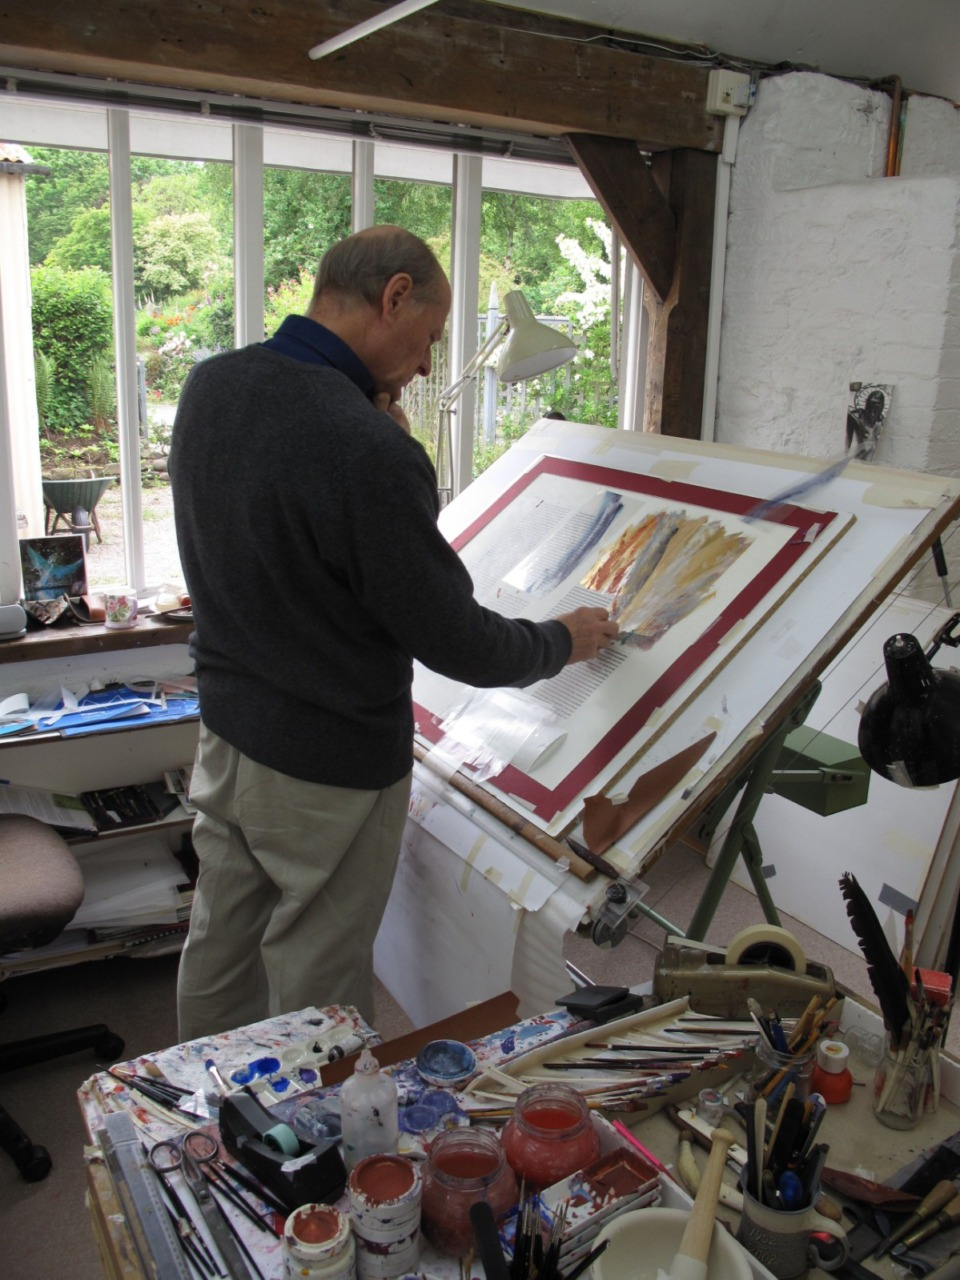 <strong>Donald Jackson works in his studio.&nbsp; In 1995, Jackson proposed that Saint John&rsquo;s Abbey mark the millennium with a handwritten, illuminated Bible that would celebrate the Benedictines&rsquo; centuries of devotion to book-making.&nbsp;After three years of fundraising and planning, the project was commissioned.</strong> (Image courtesy of Donald Jackson&rsquo;s Scriptorium, Wales, UK)